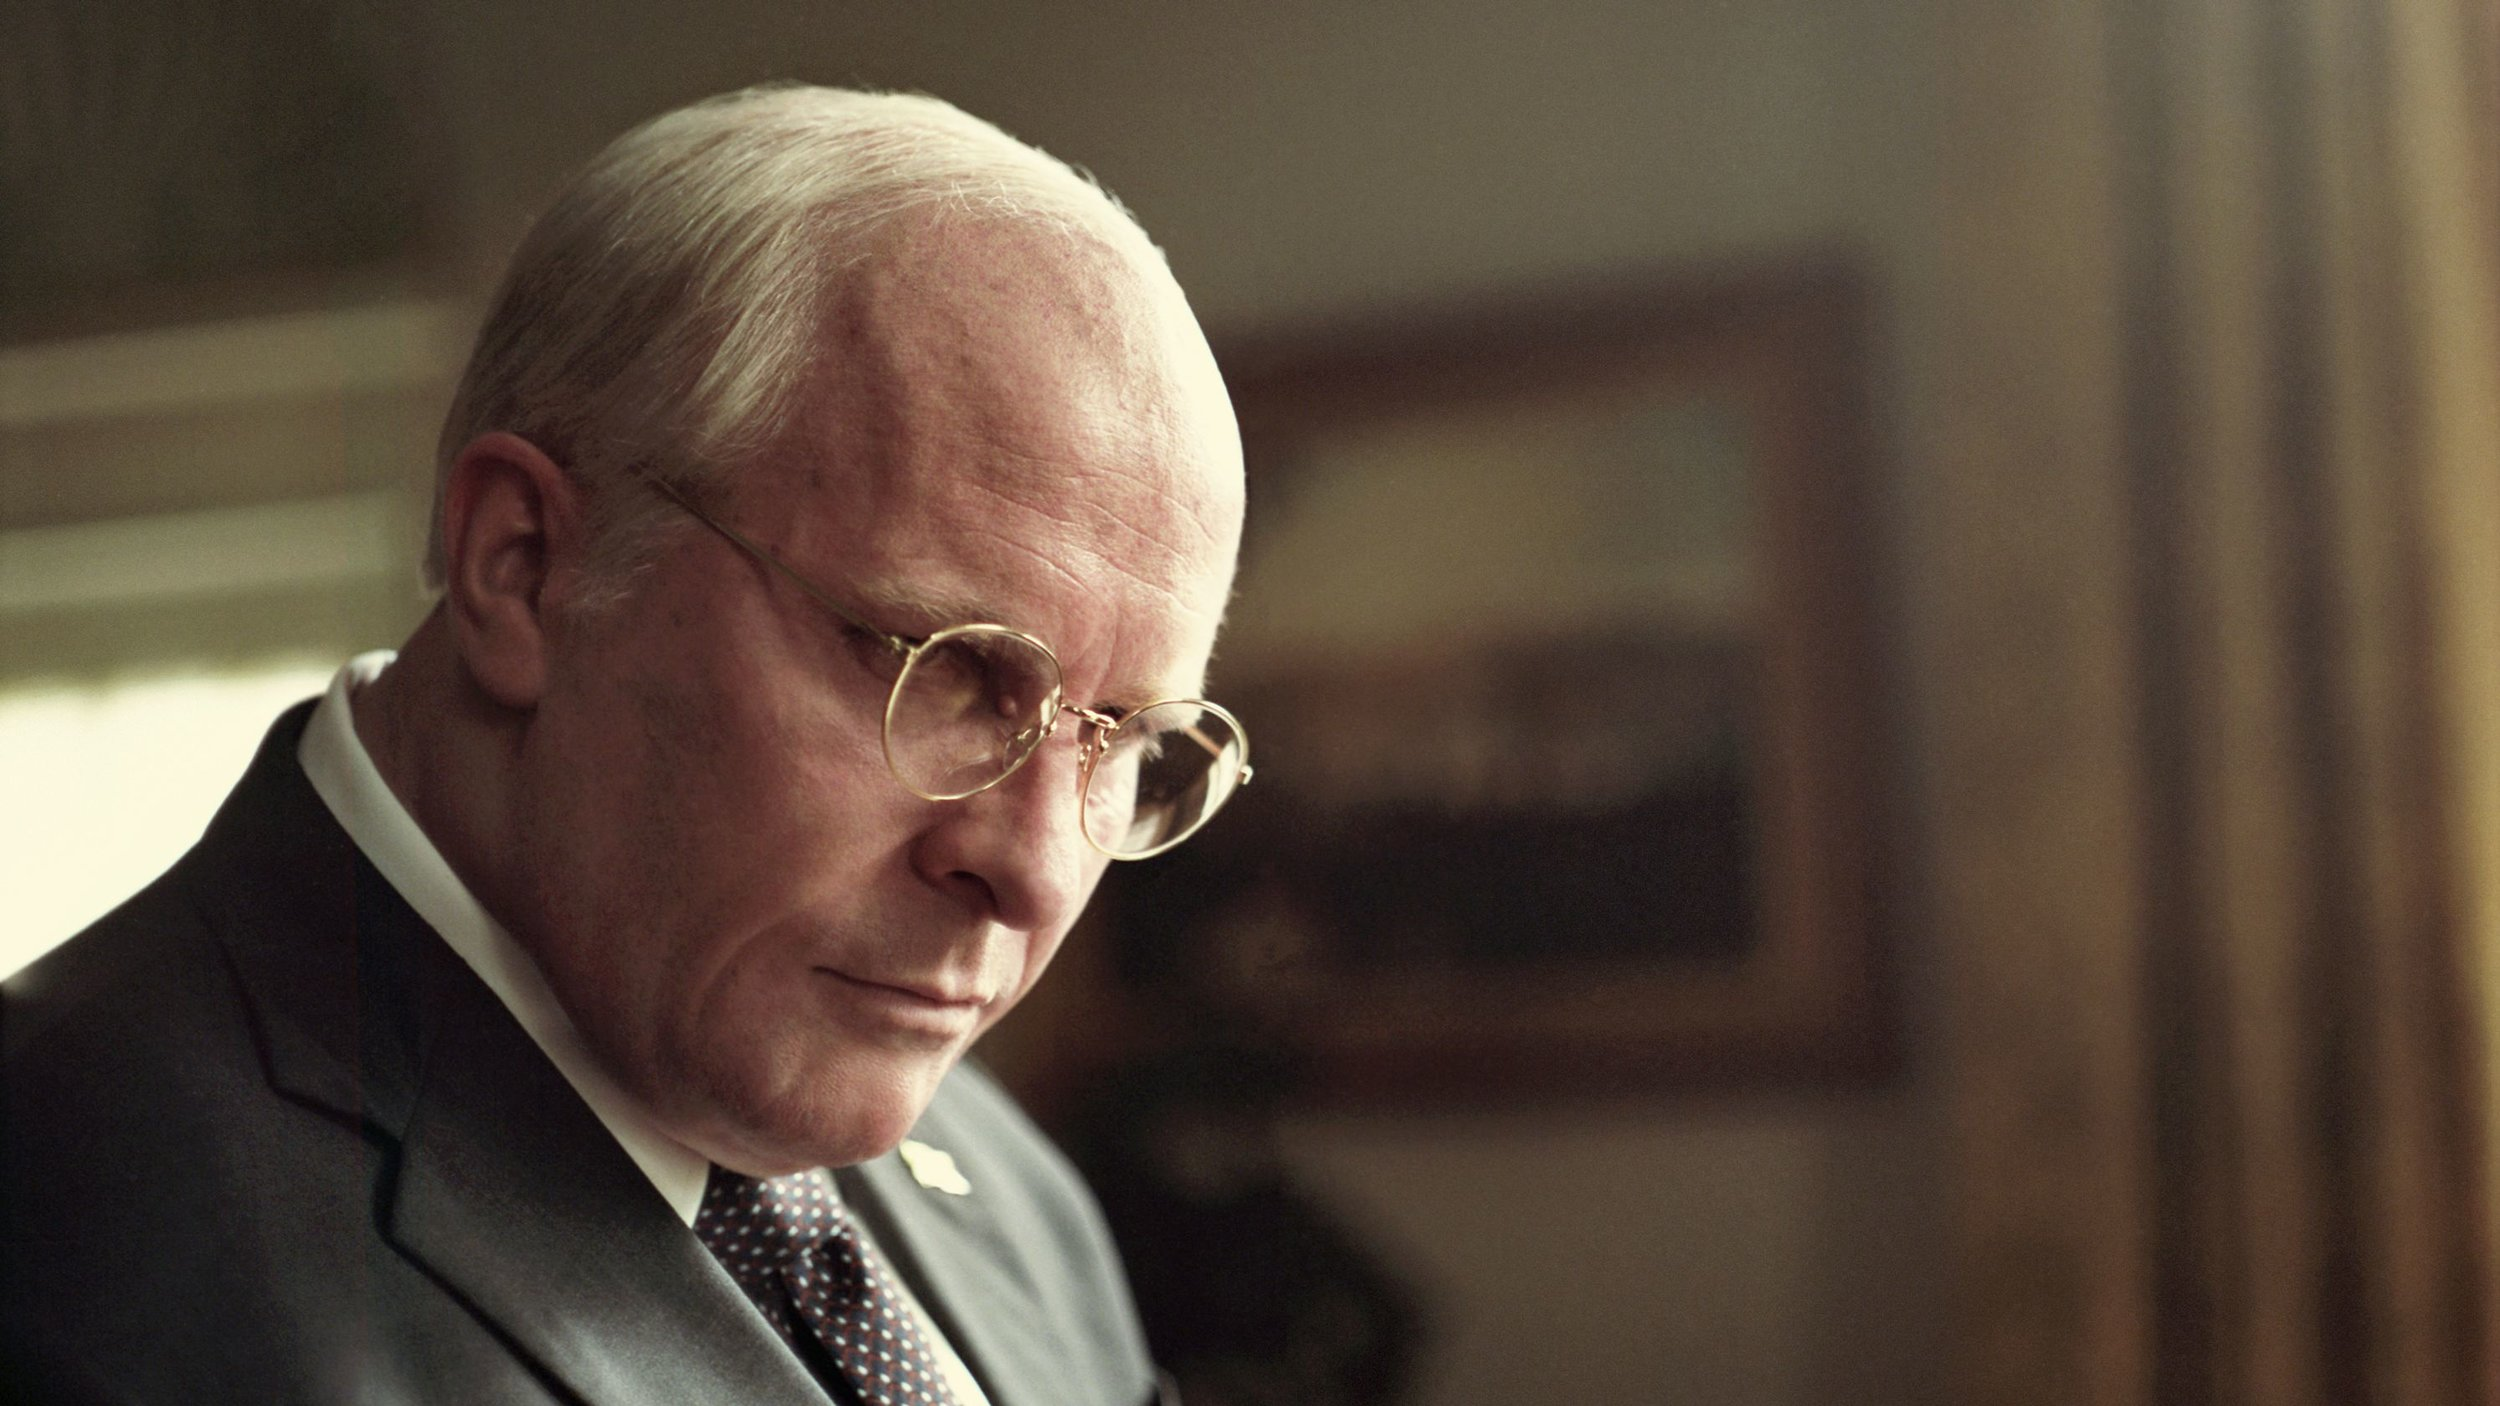 The Hollywood Foreign Press  really  liked  Vice - will the industry follow suit?